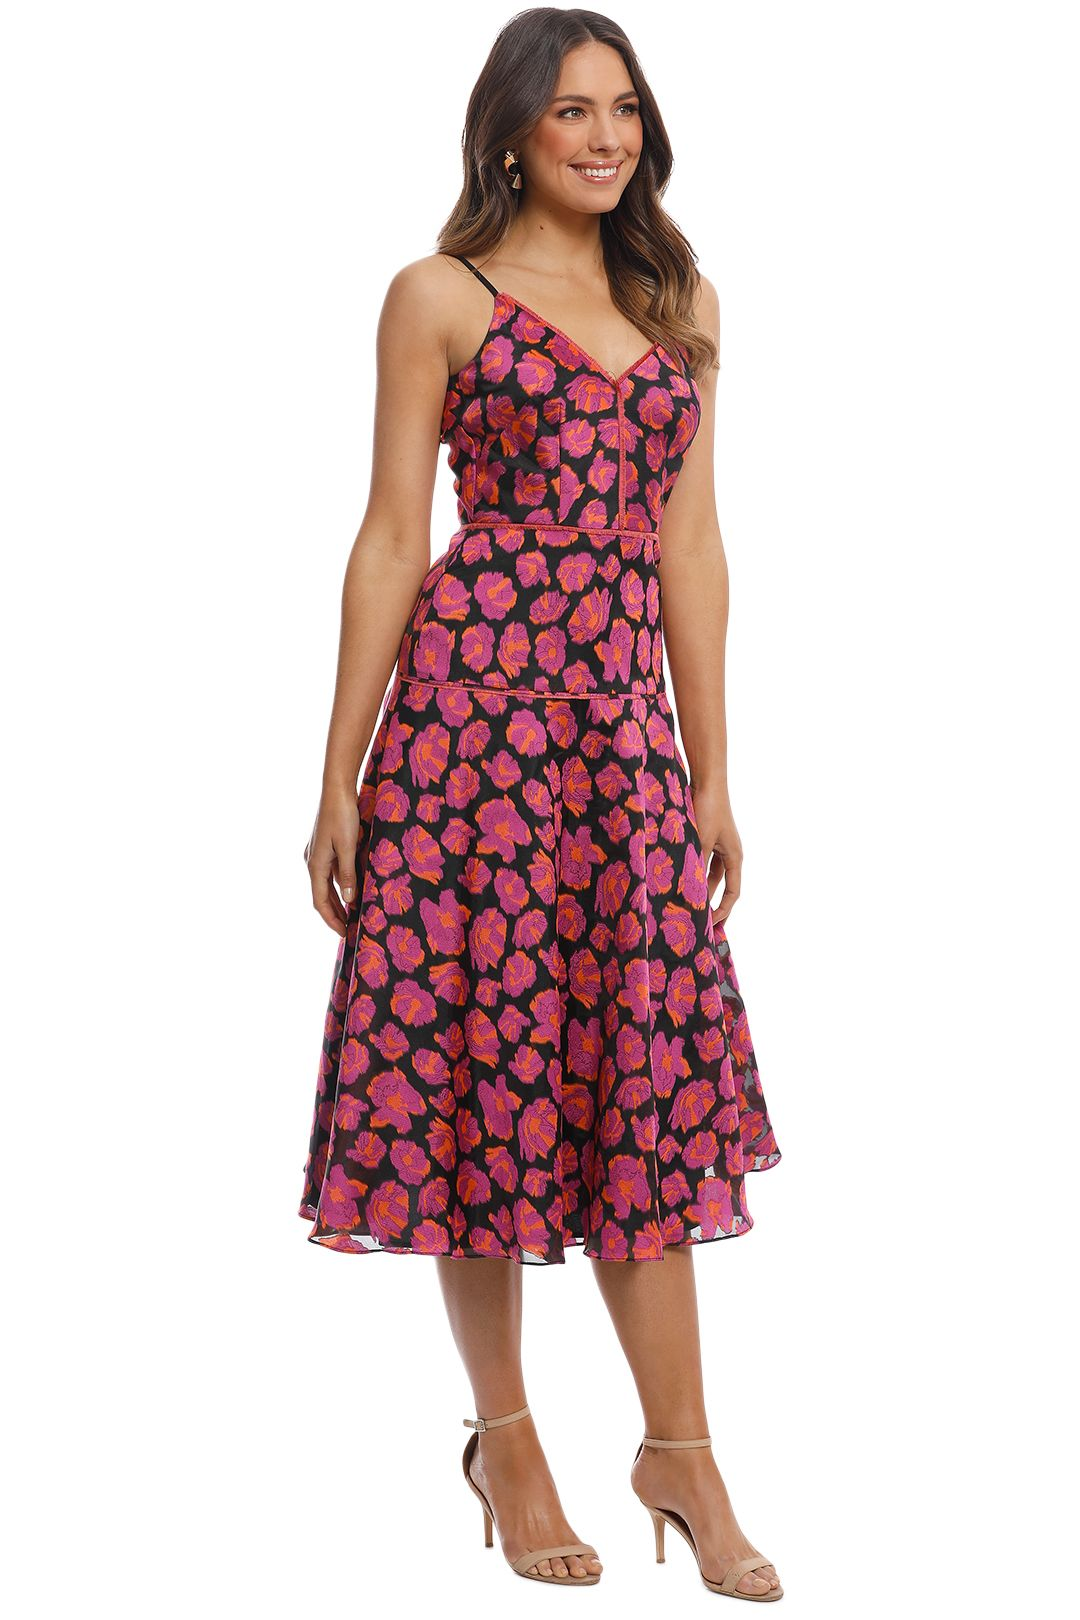 Moss and Spy - Lysander Dress - Pink Multi - Side